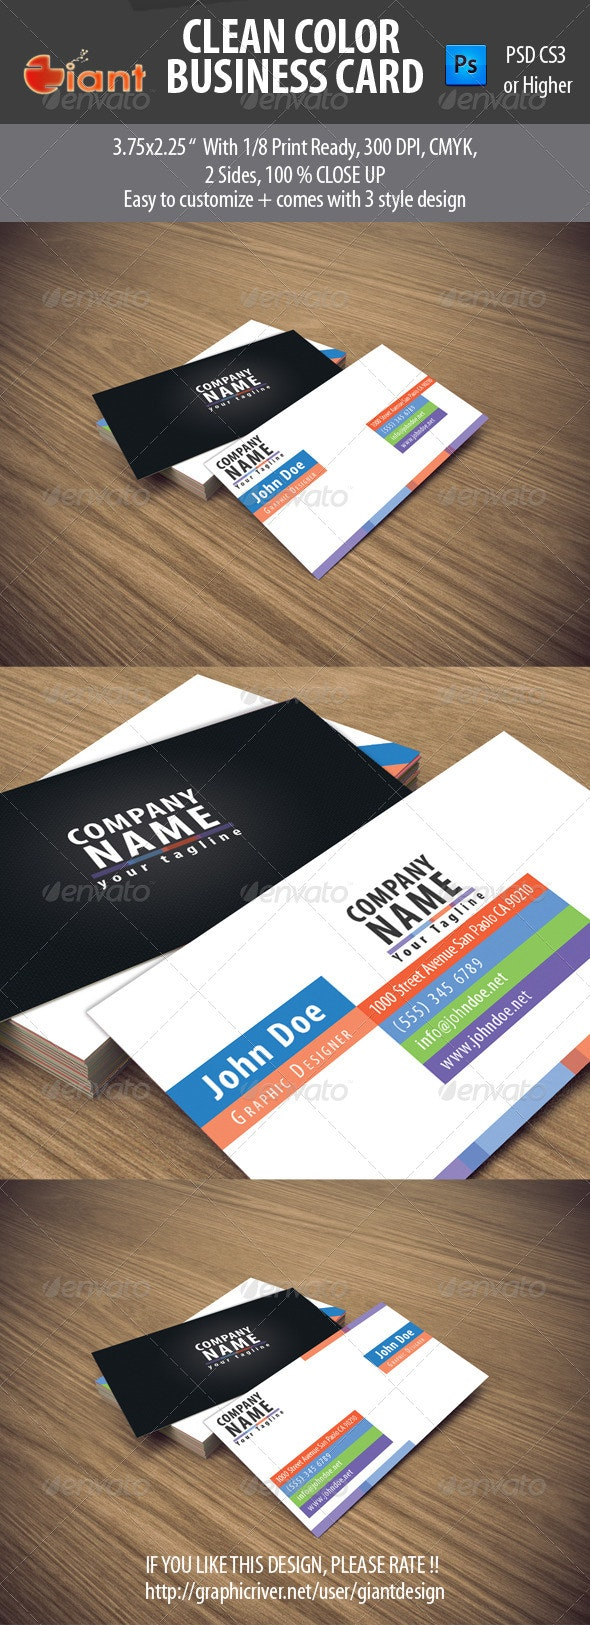 Clean Color Business Card - Creative Business Cards